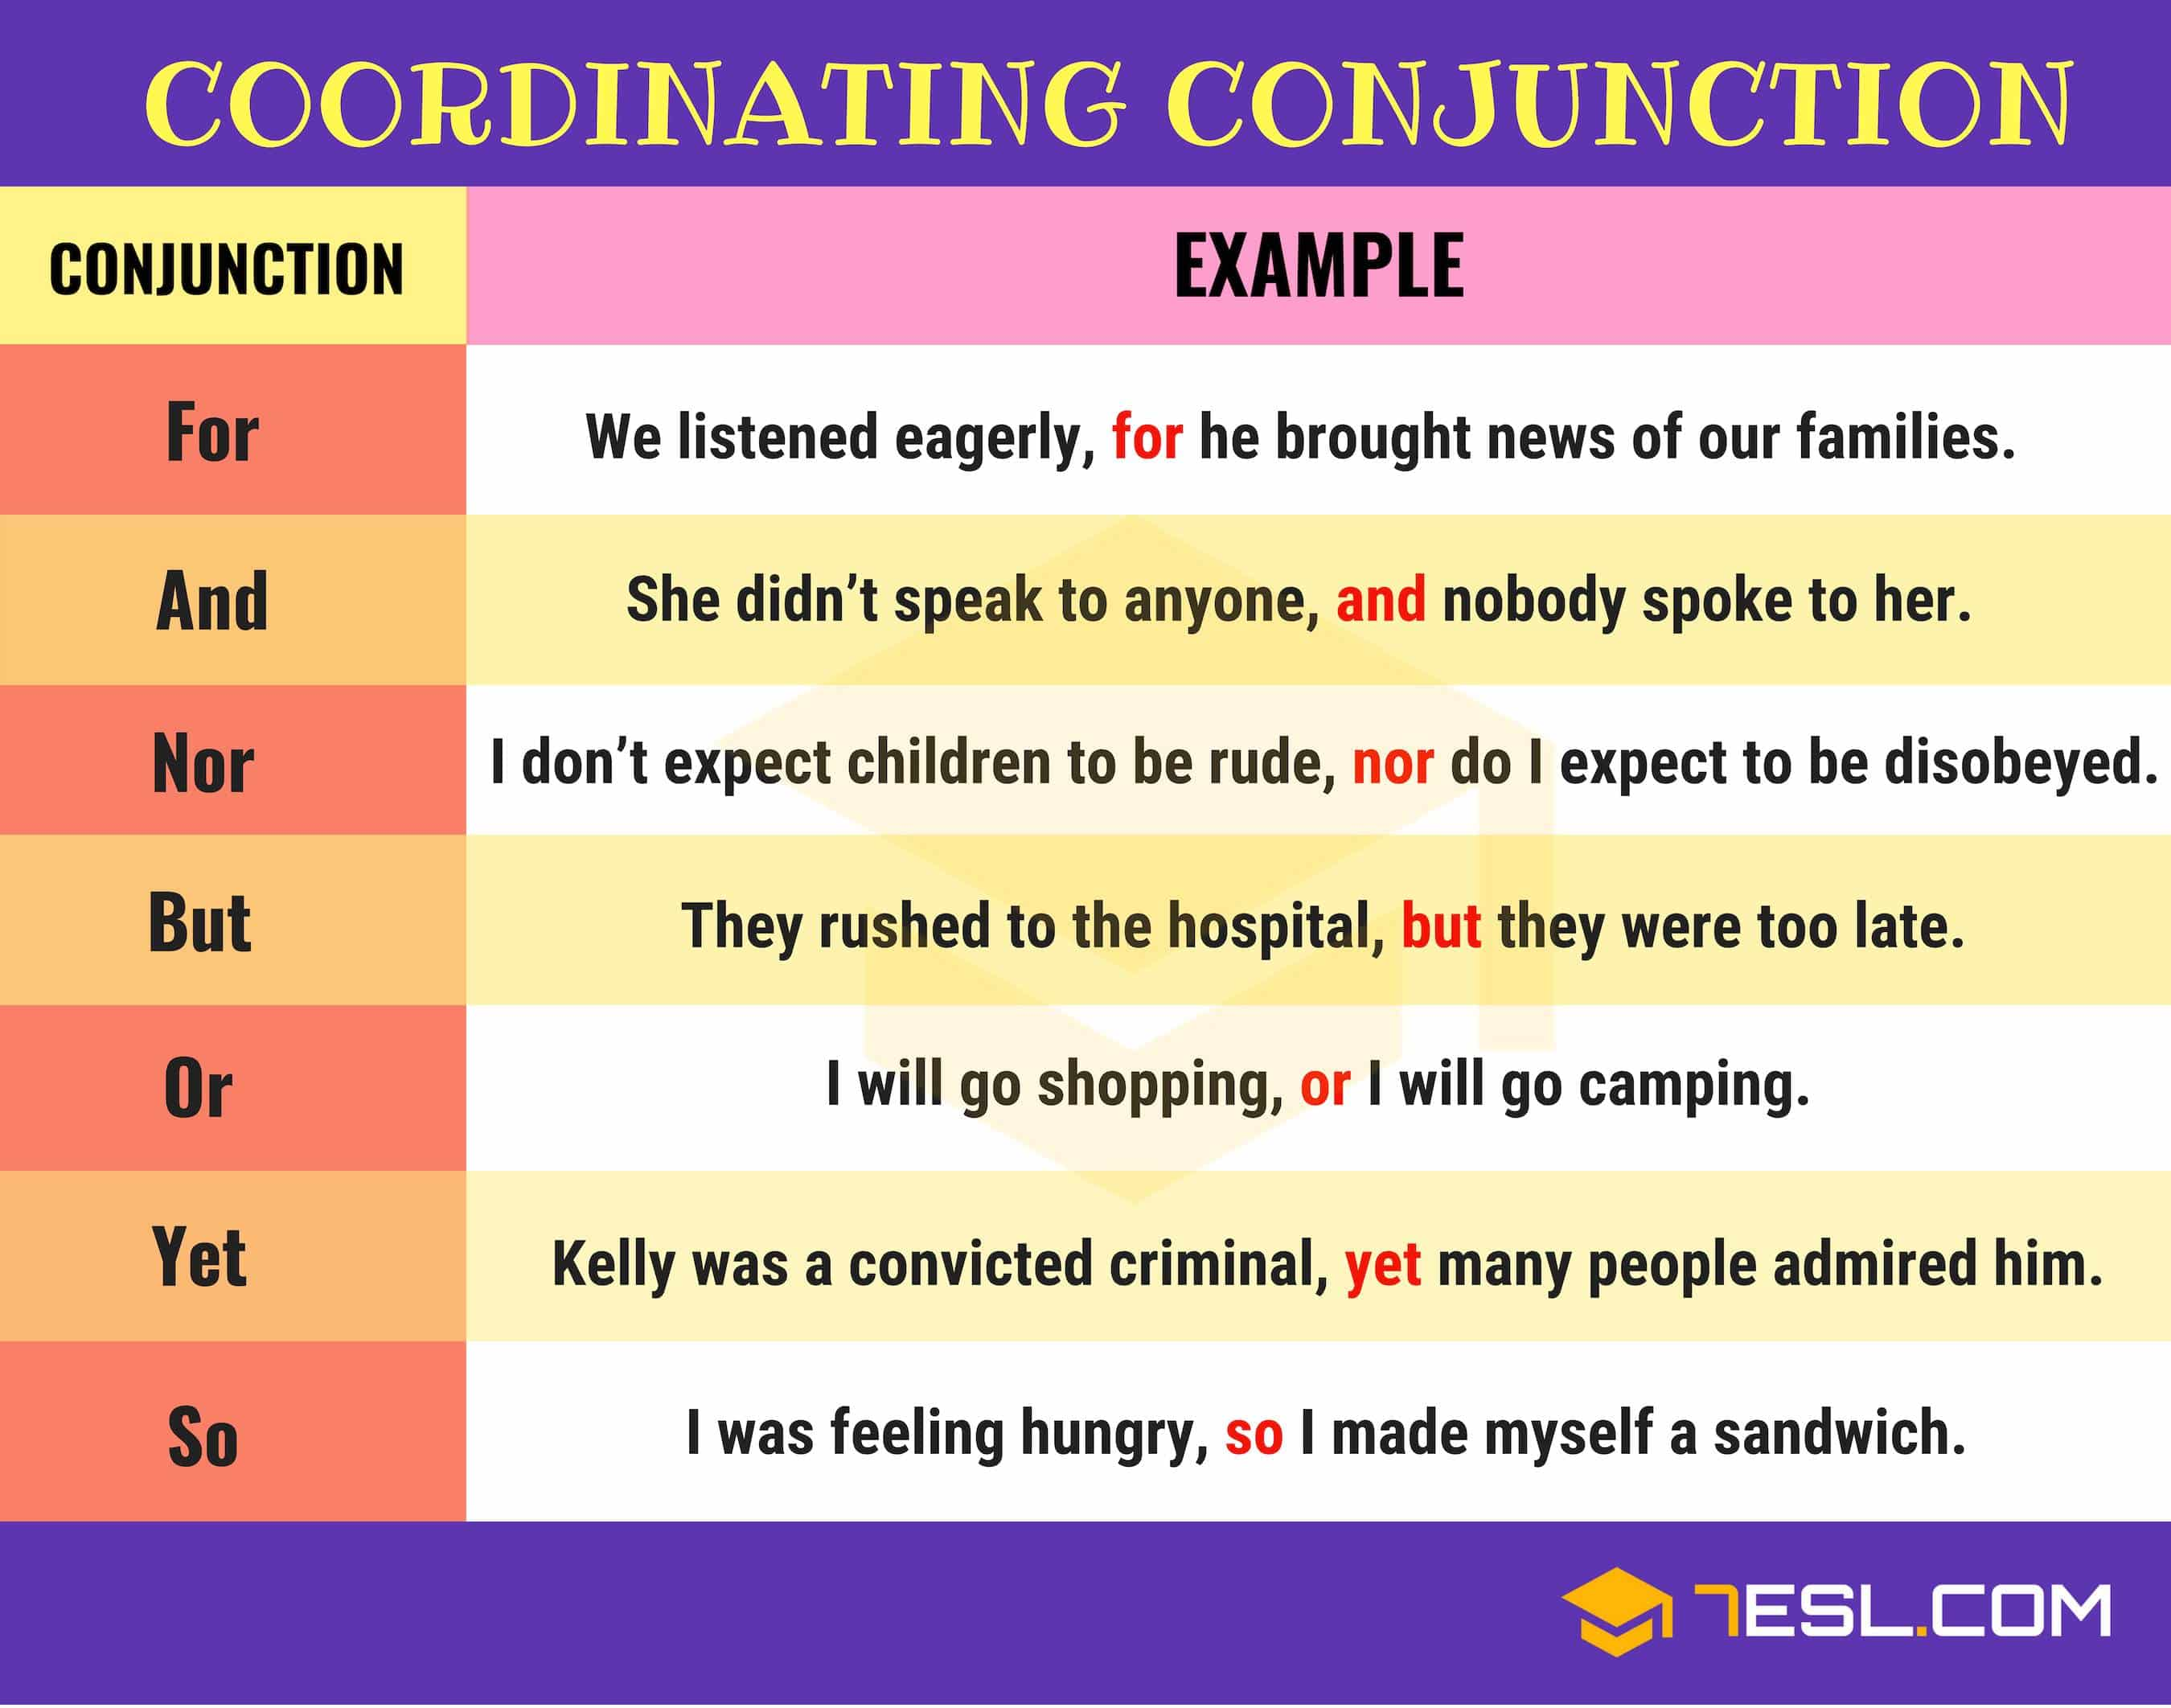 List Of Coordinating Conjunctions In English Fanboys